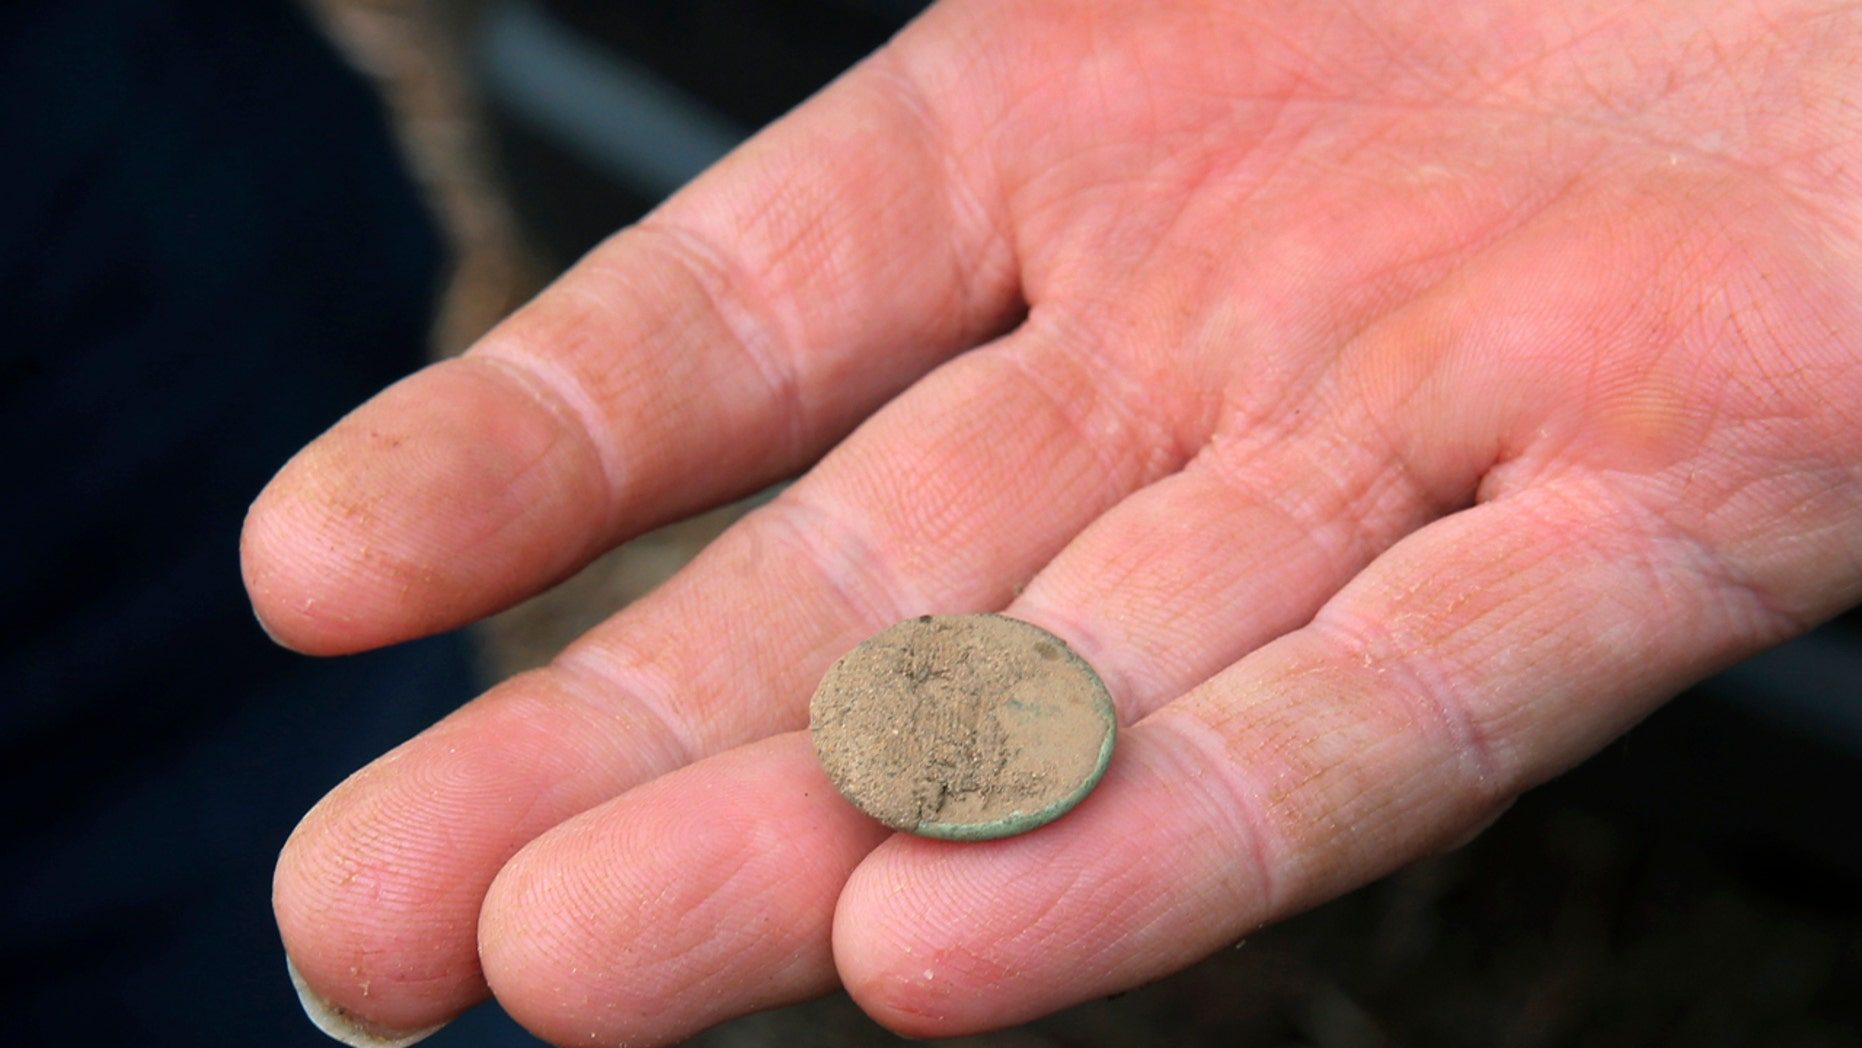 May 5, 2016: Kevin Bradley, project archeologists with Commonwealth Heritage Group, a Michigan-based firm that specializes in archaeological surveying, holds a small button unearthed while looking for artifacts in Chatham, N.J.